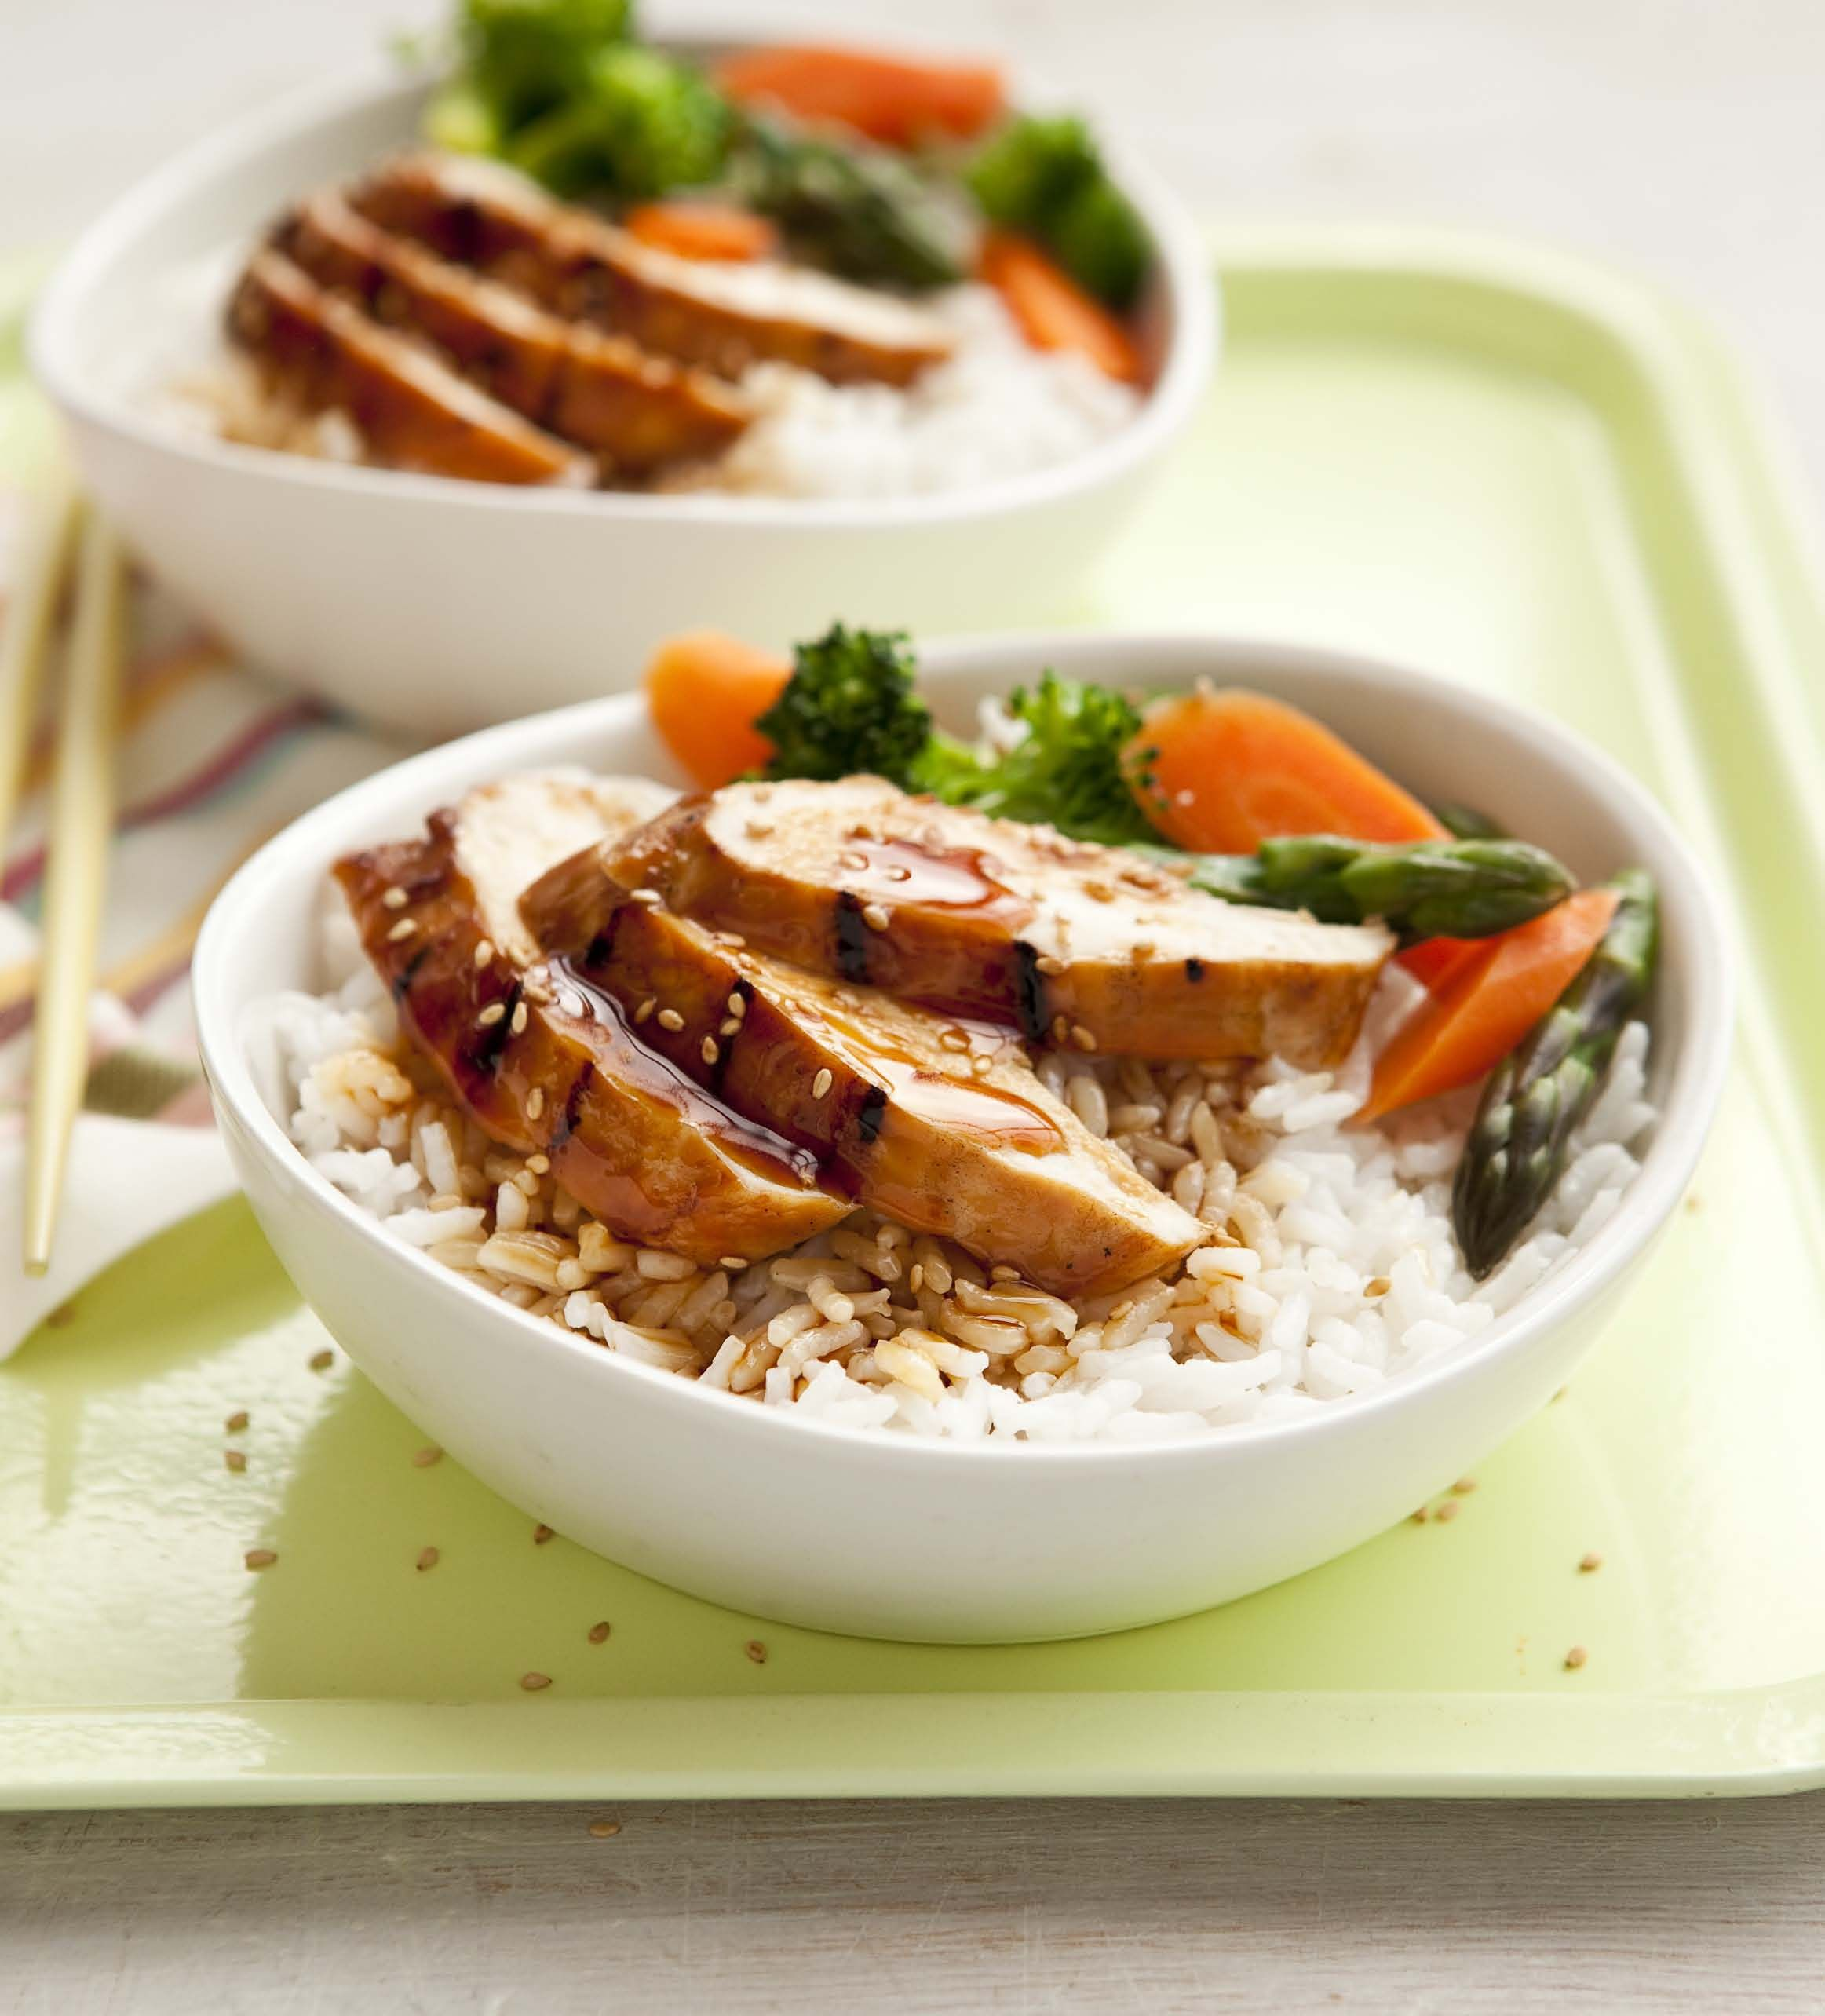 Marinated Teriyaki Chicken Breast